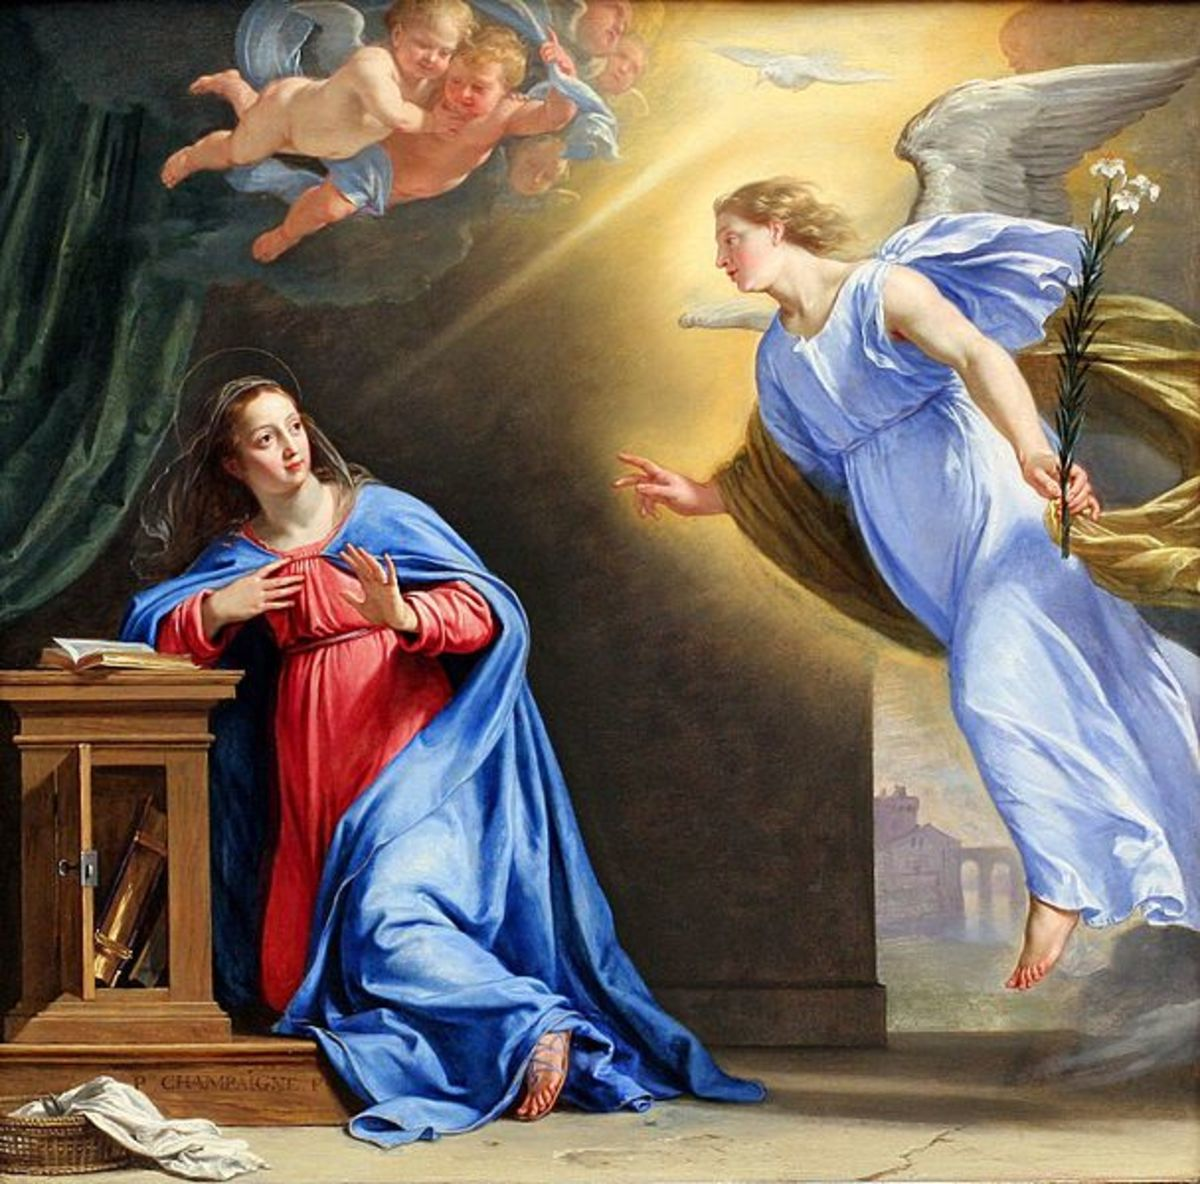 Angel Gabriel Appearing to Mary